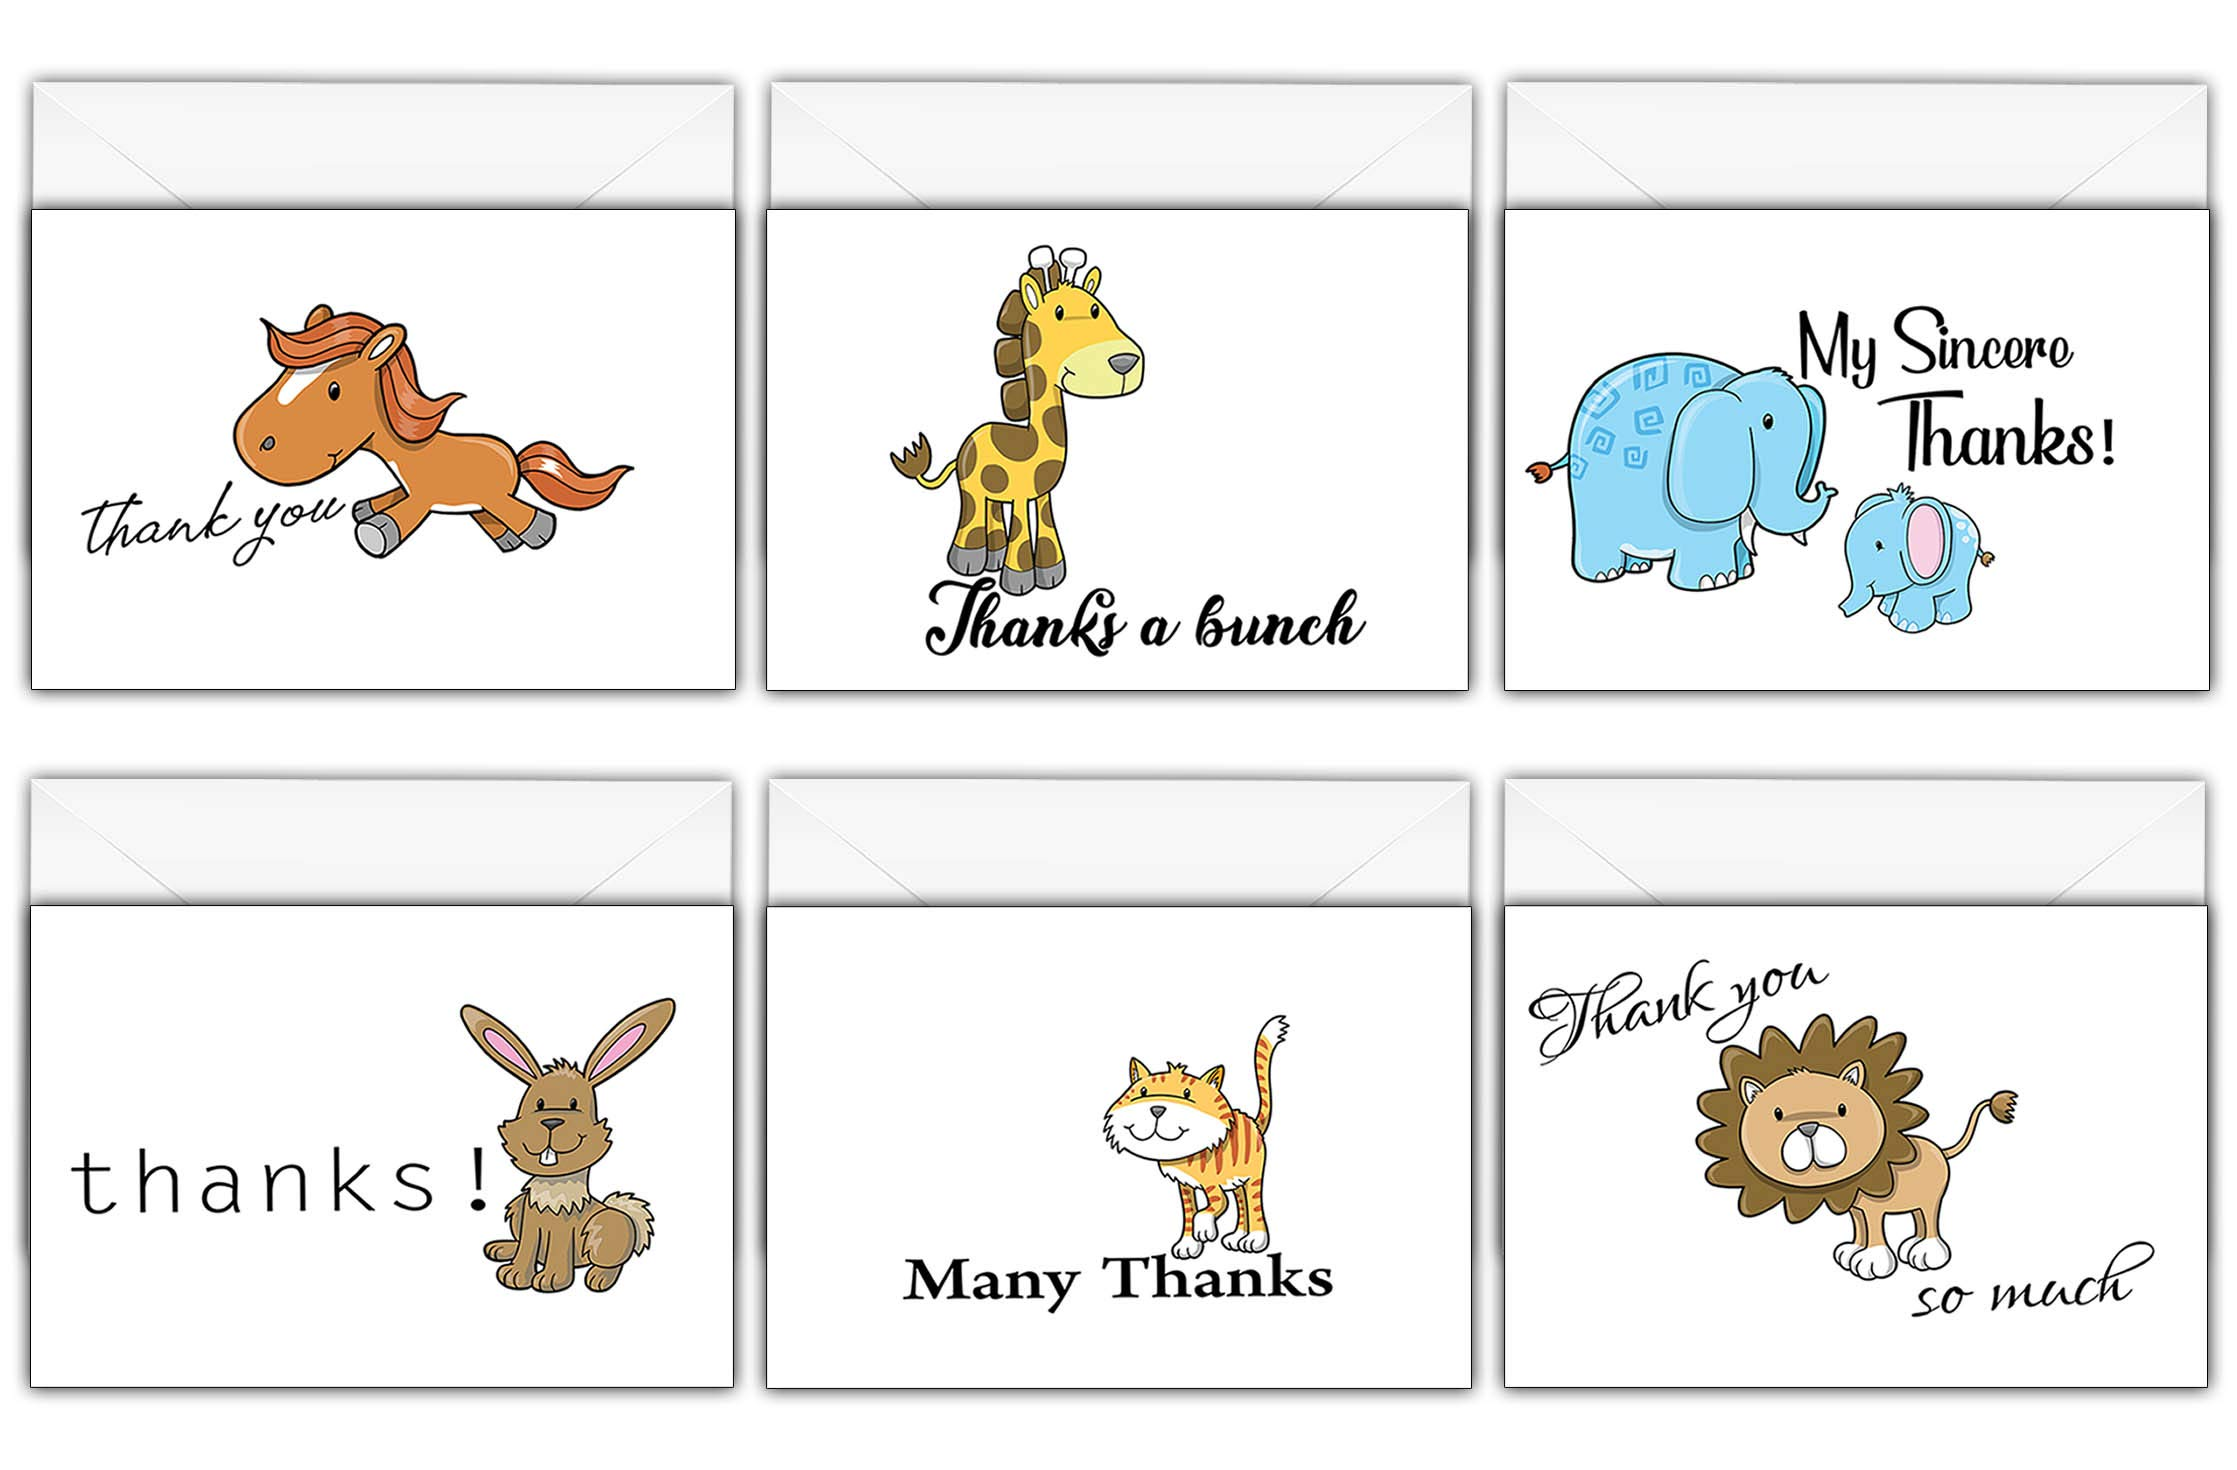 Creanoso Assorted Thank You Cards Pack (30-Pack) – Gift Card Cute Animal Themed Card Set – Cool Greeting Cards for Wedding, Baby Shower Gifts, Bridal Decoration, Birthdays, and Special Occasions